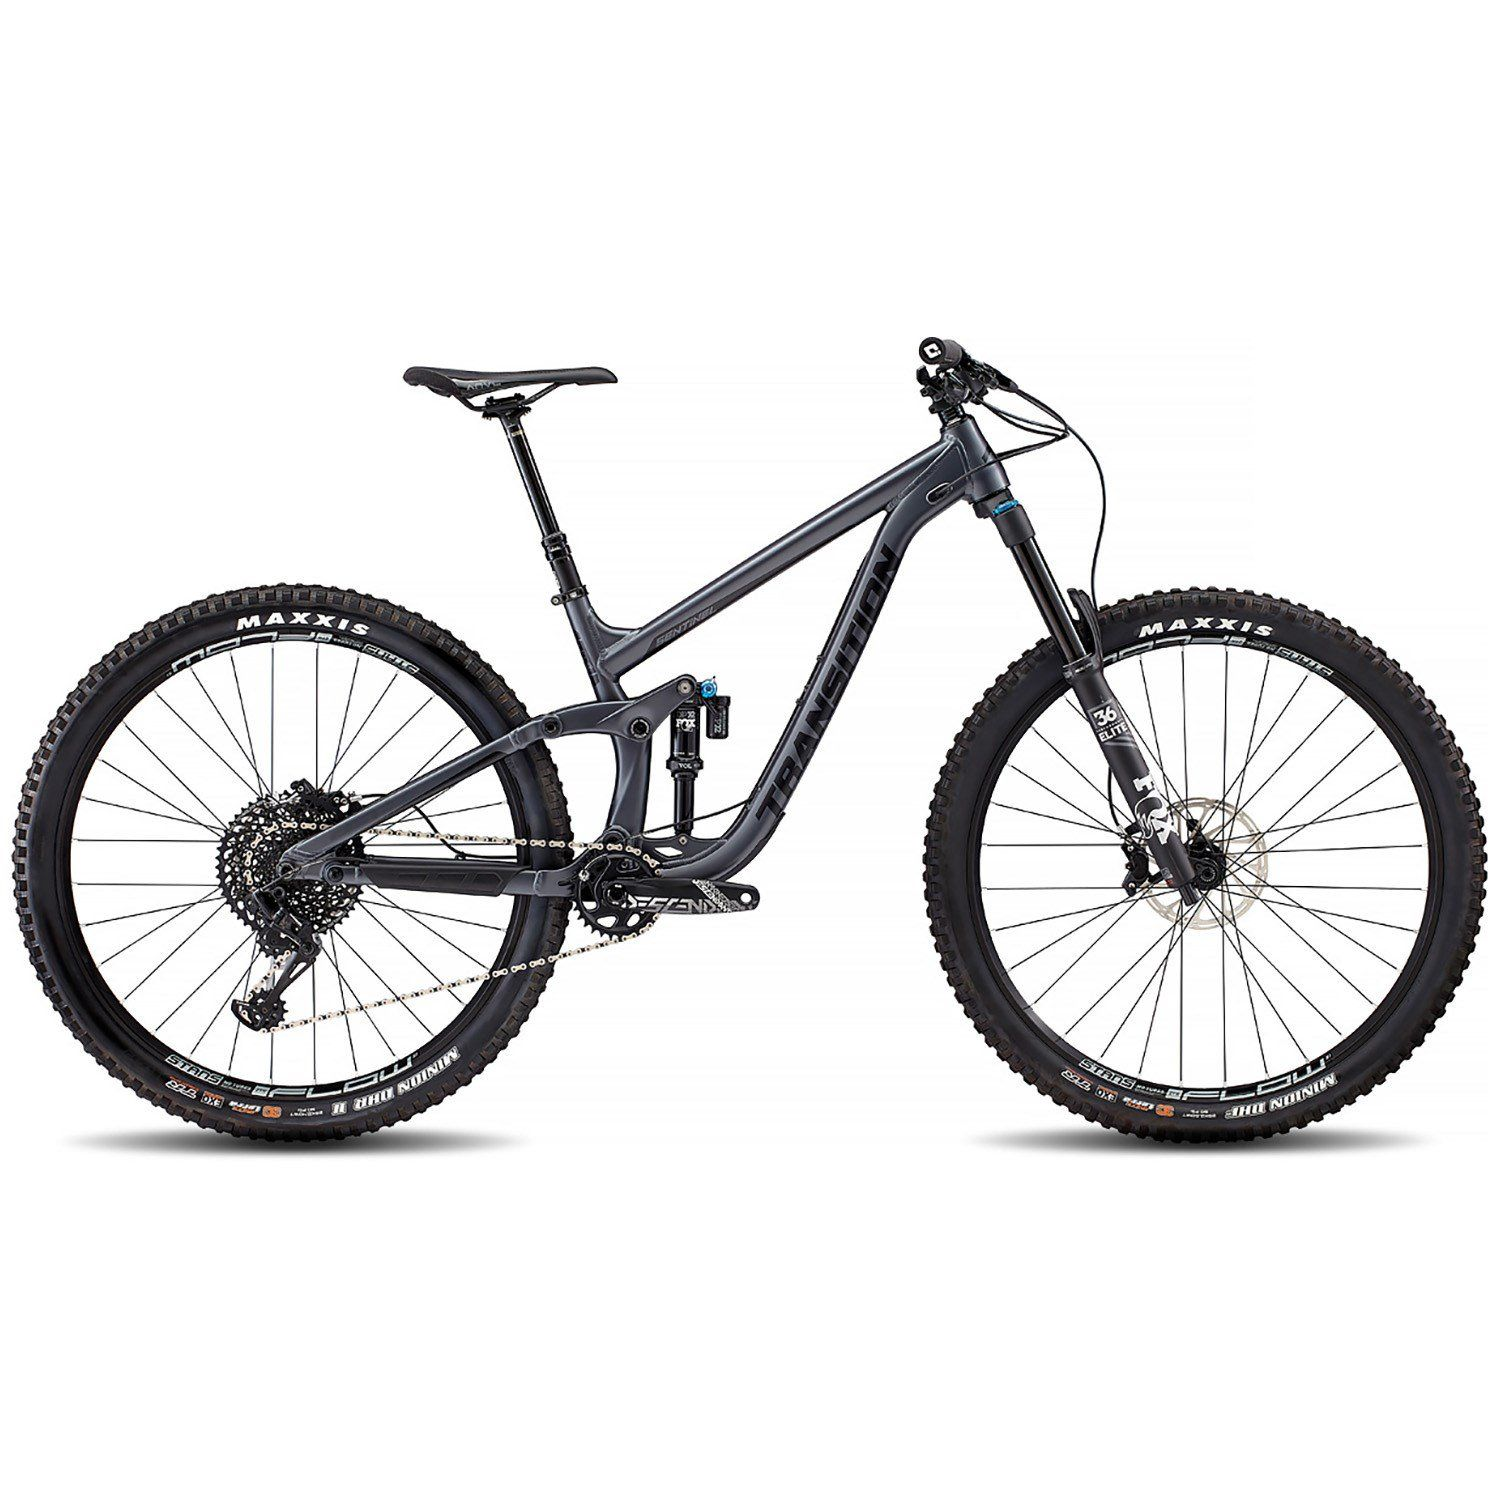 Transition Sentinel Alloy Gx Complete Mountain Bike 2019 Large